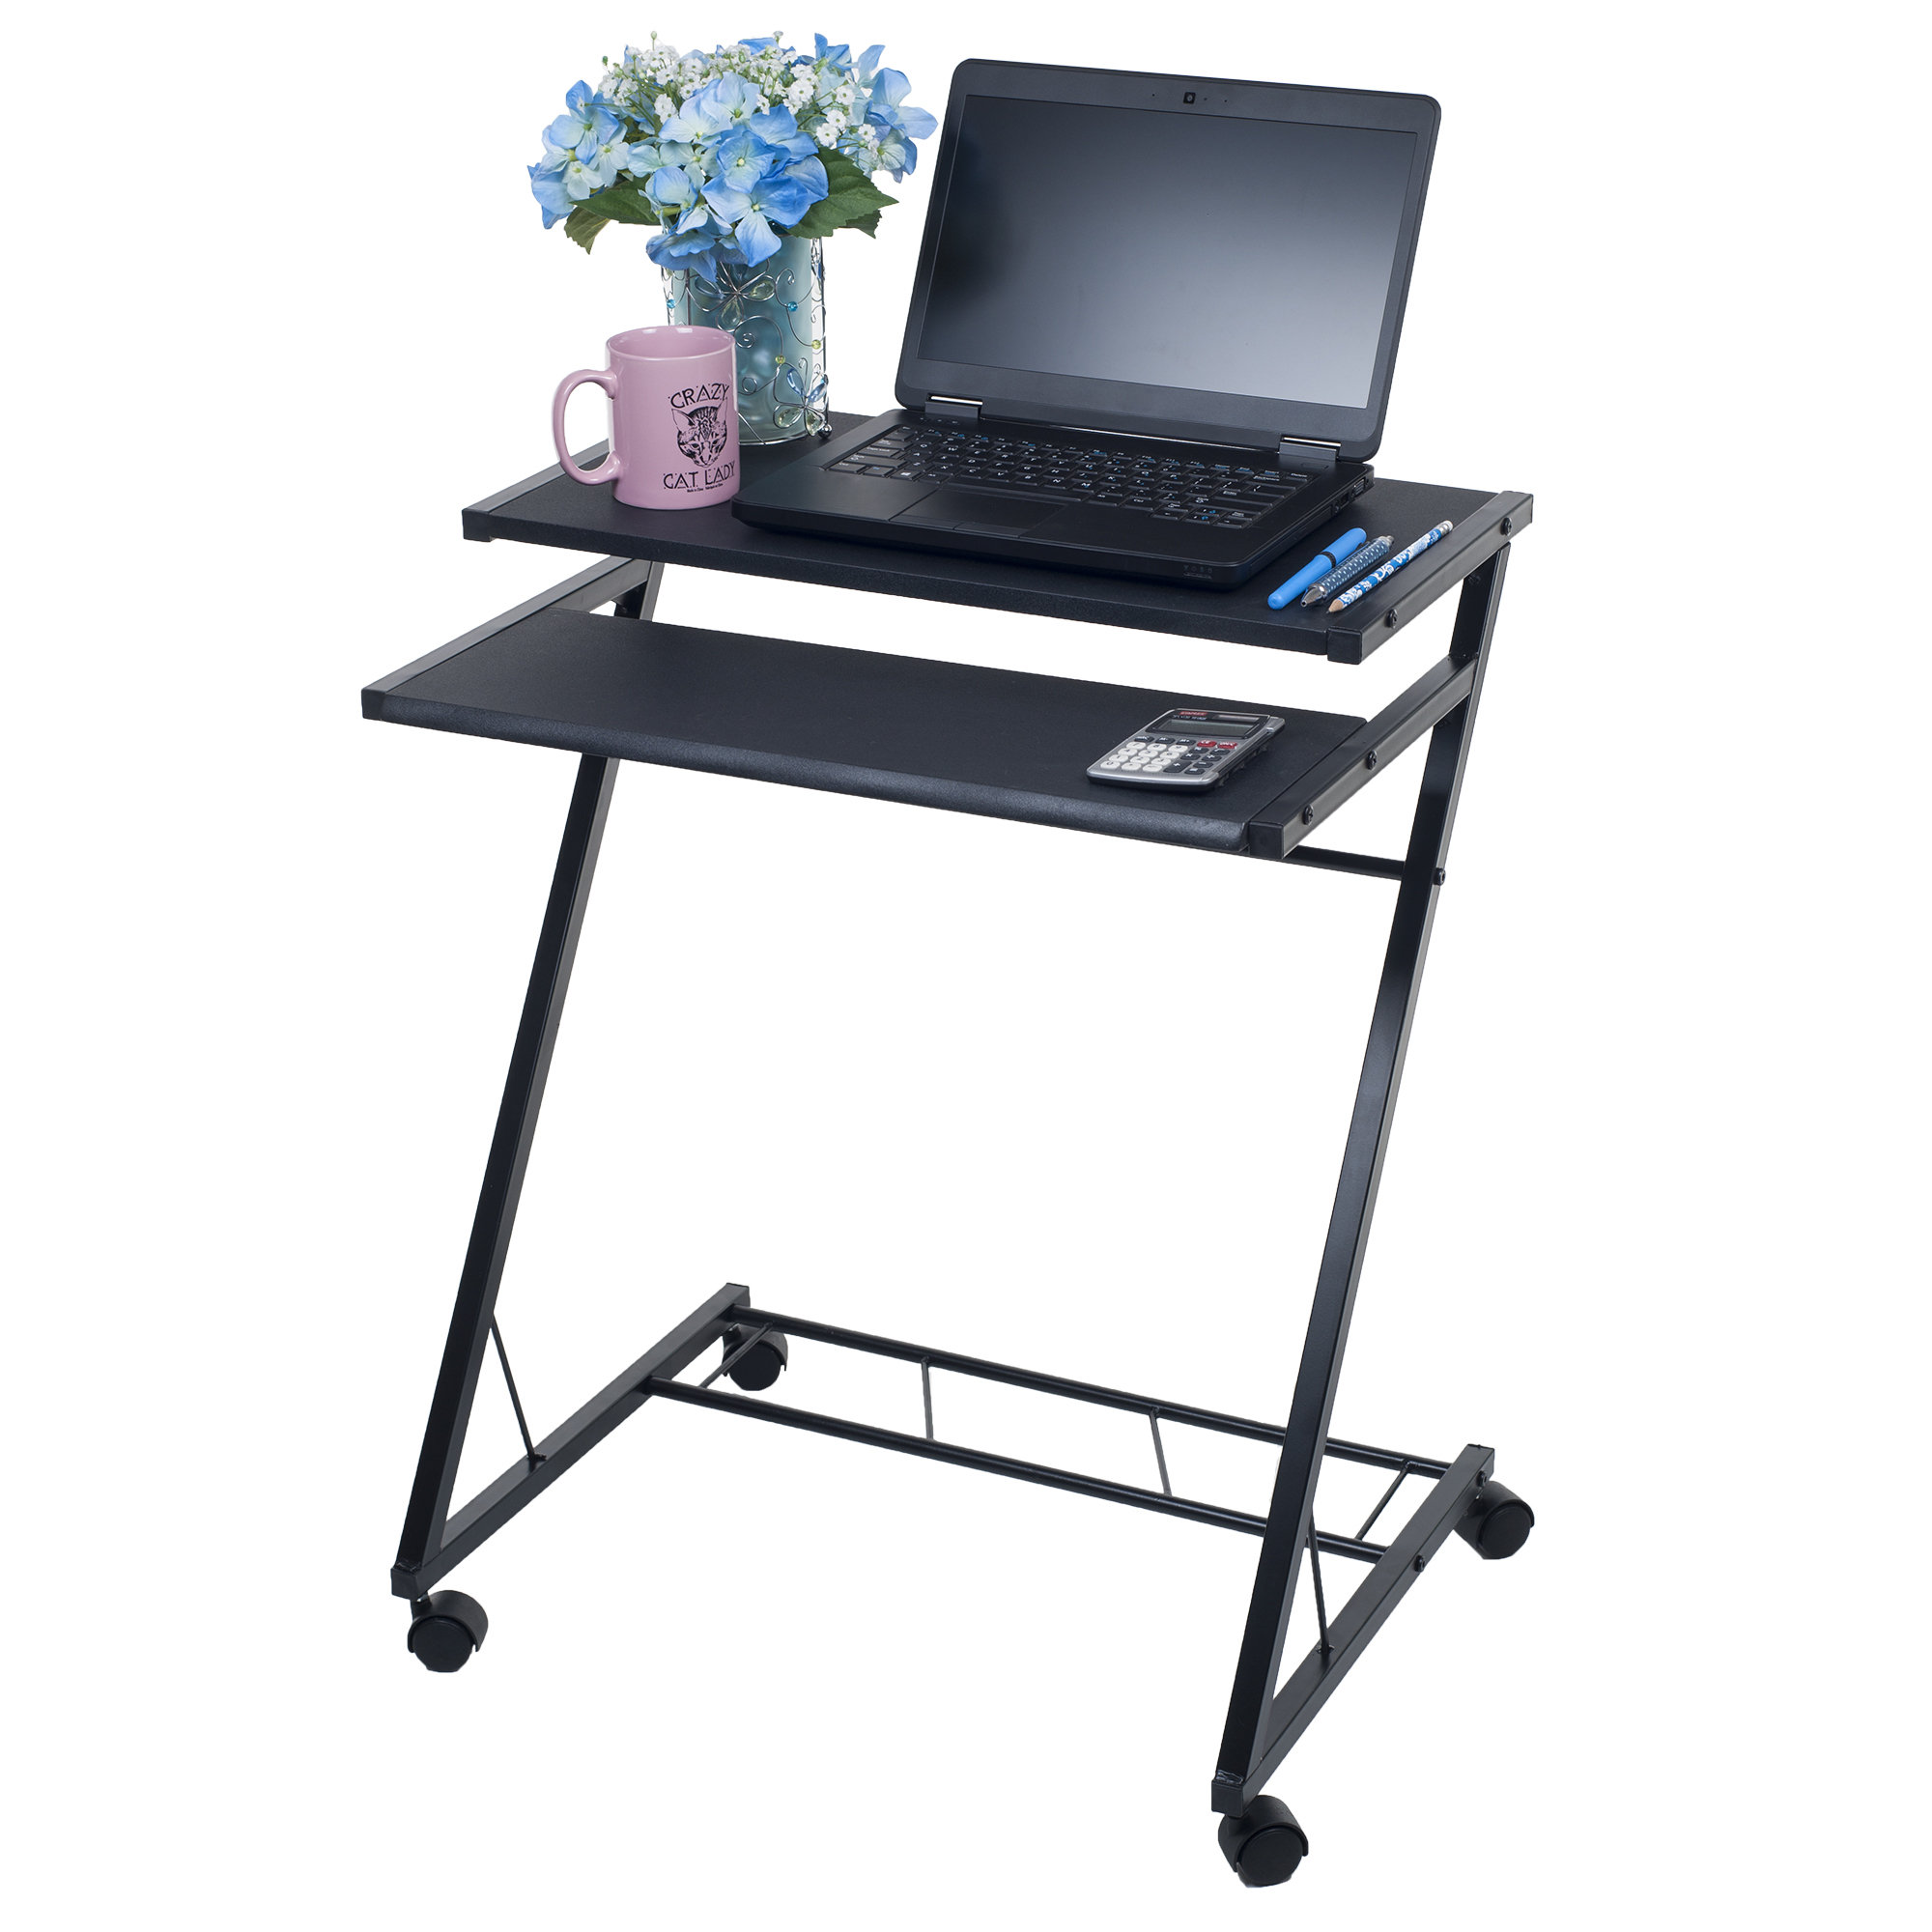 Ordinaire Mobile Rolling Cart Compact Computer Desk